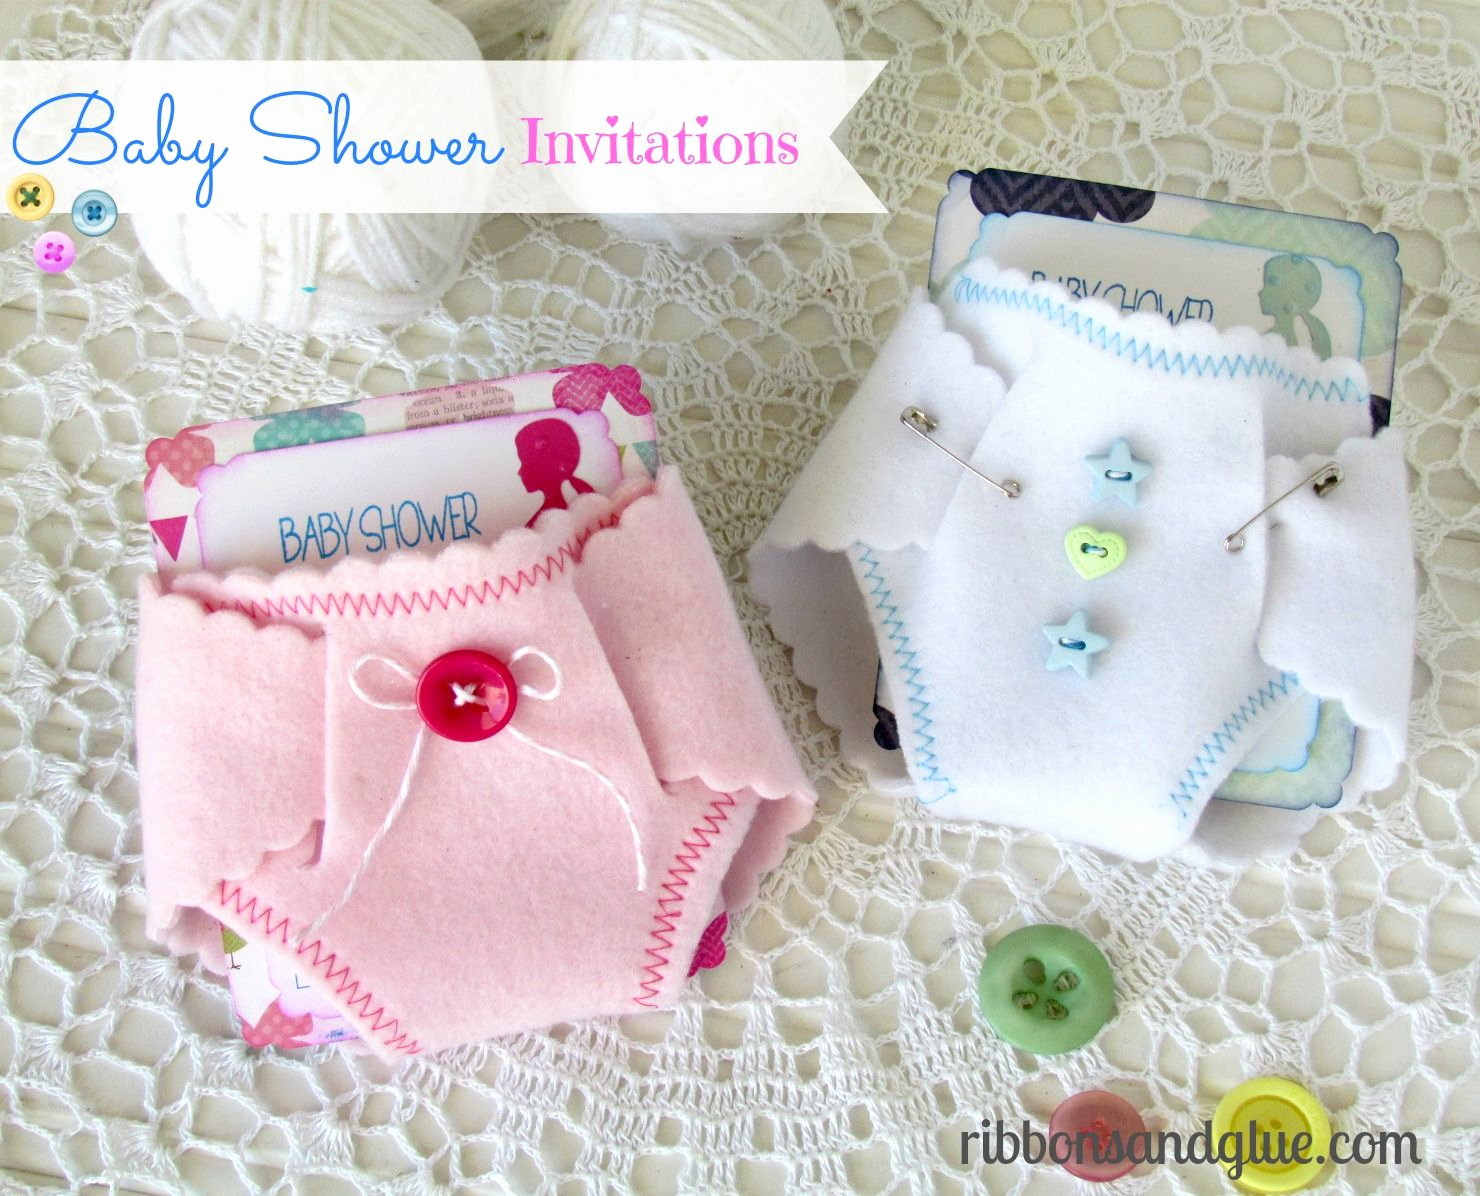 Homemade Baby Shower Invitation Ideas Inspirational Baby Shower Diaper Invitations Diy Ideas